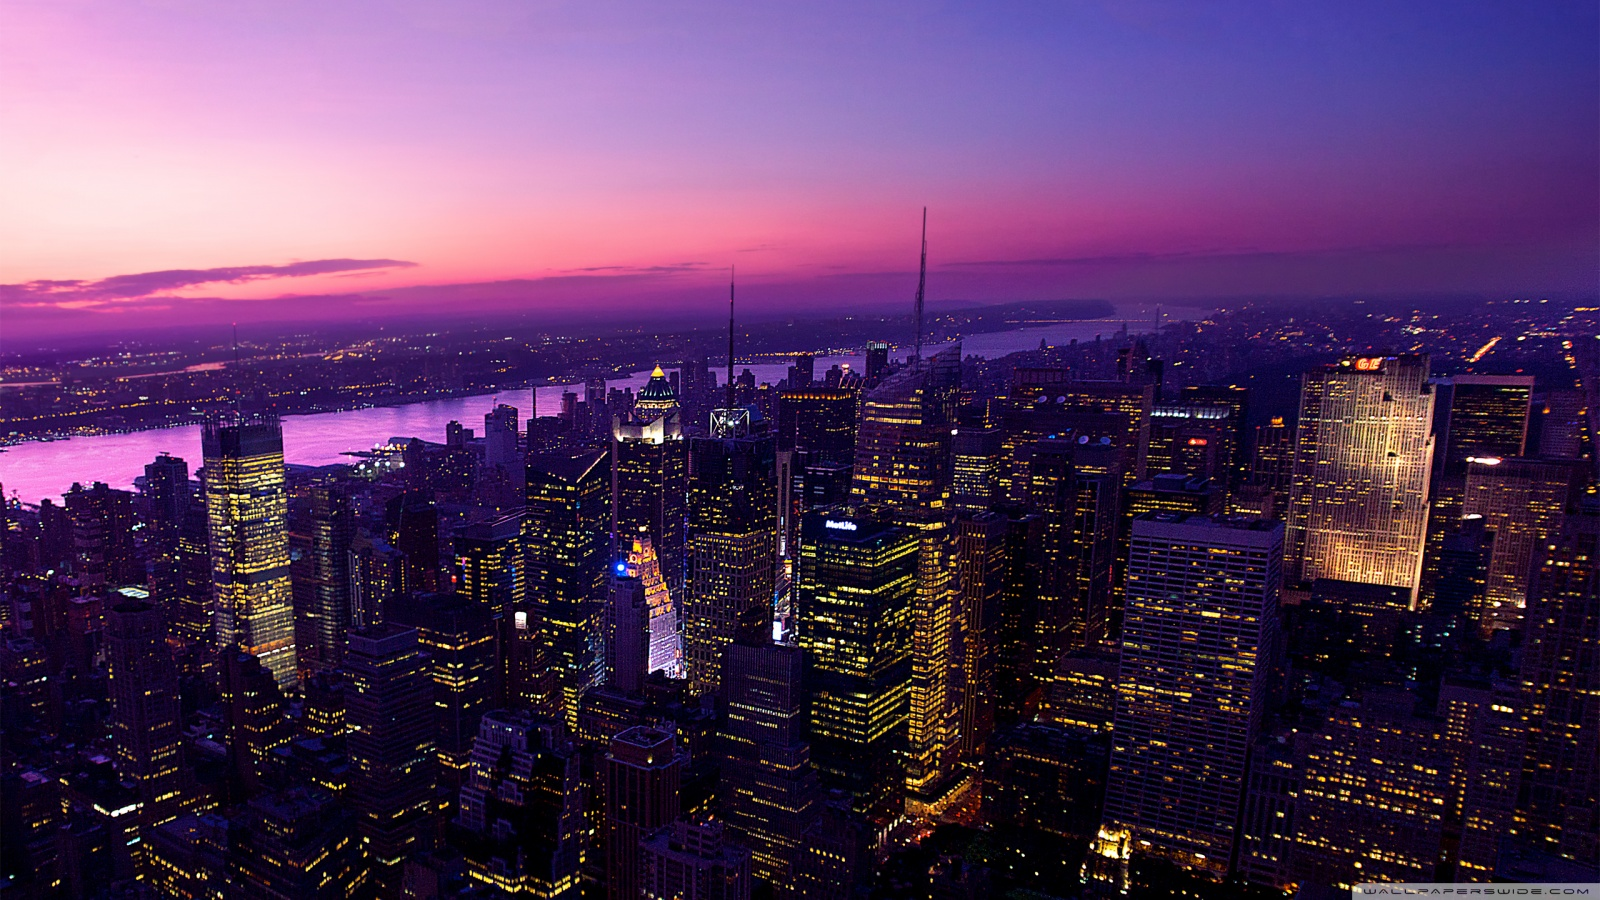 Download City Sunset Wallpaper Gallery